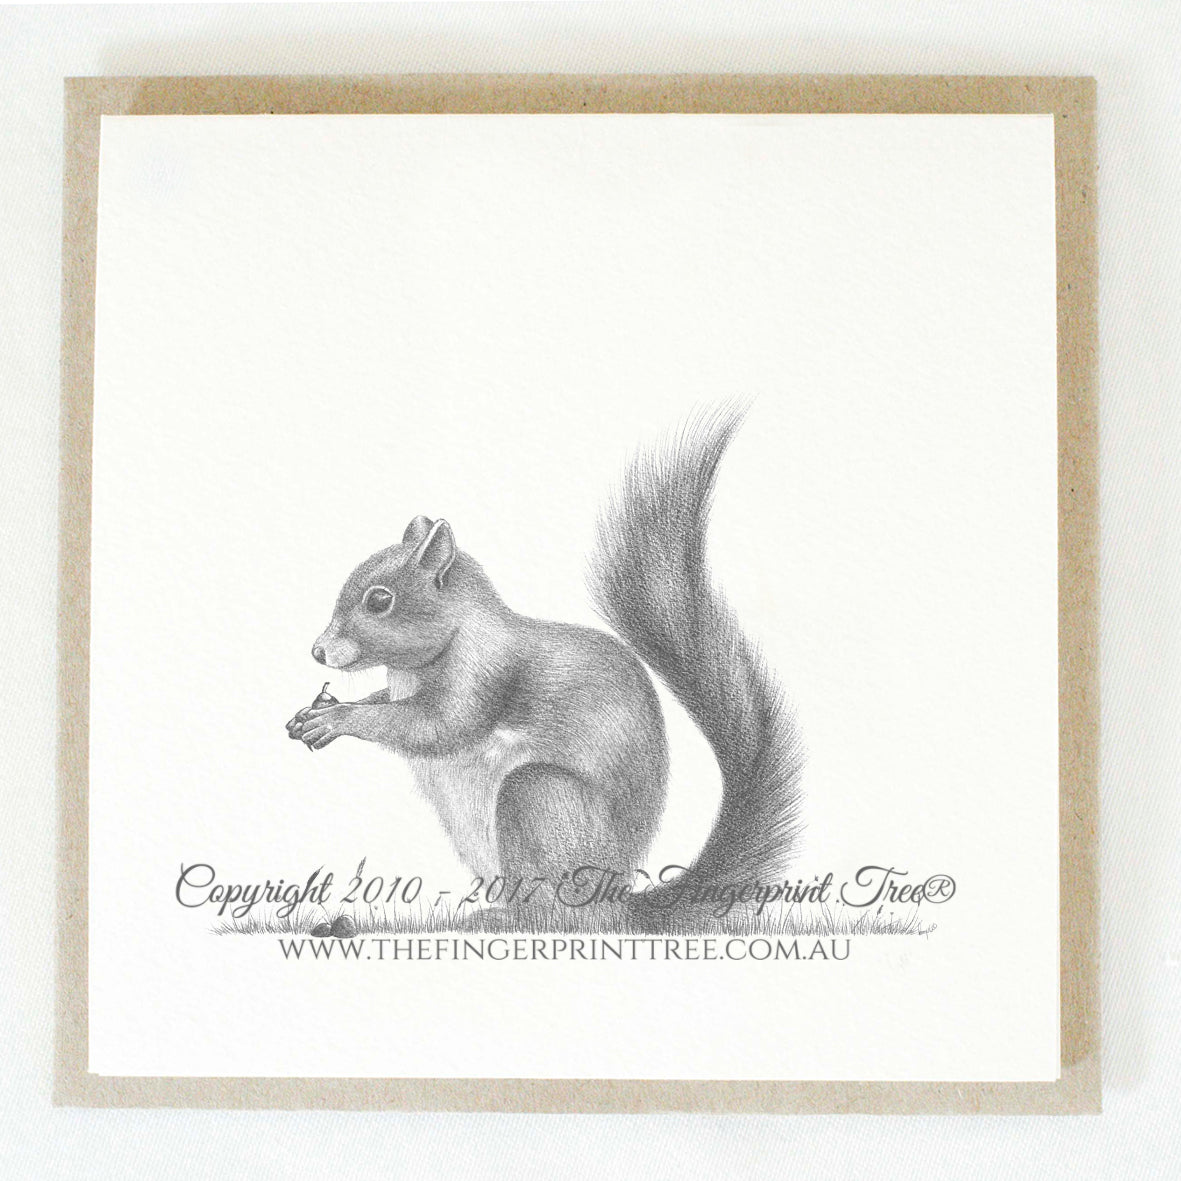 Squirrel 5 x gift cards